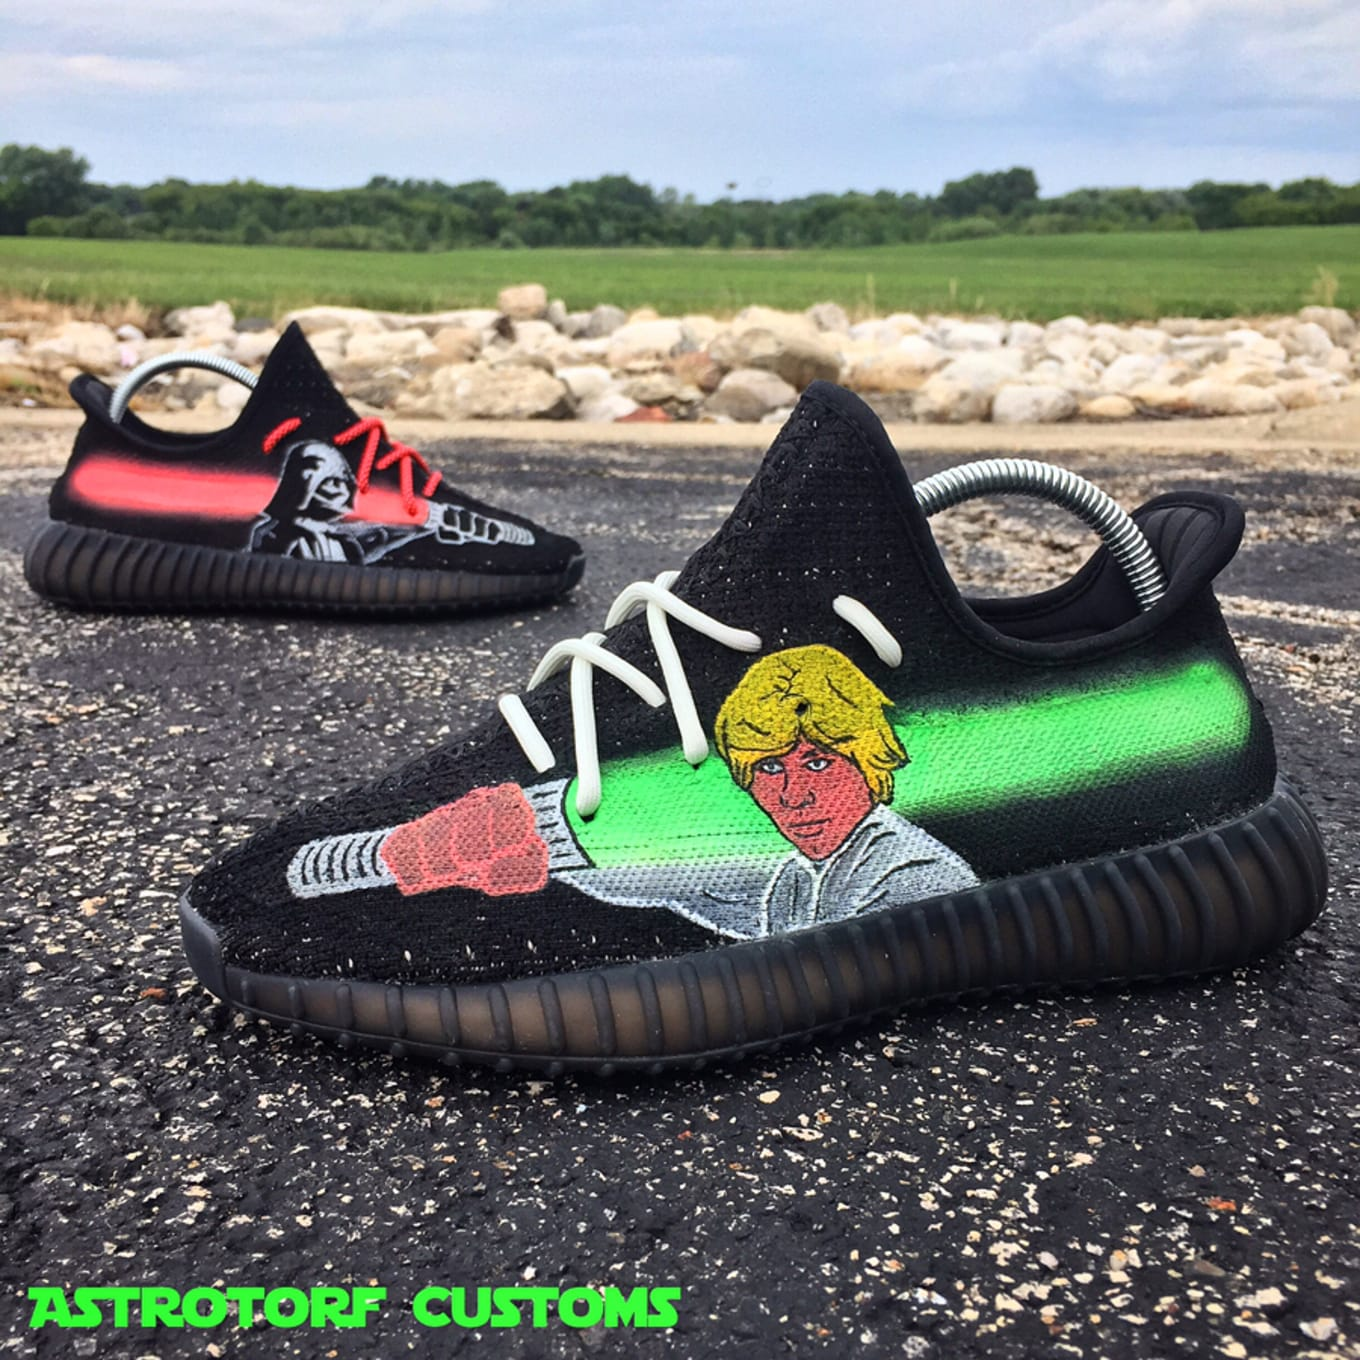 055e7b6da The Best Adidas Yeezy 350 Boost V2 Customs | Sole Collector